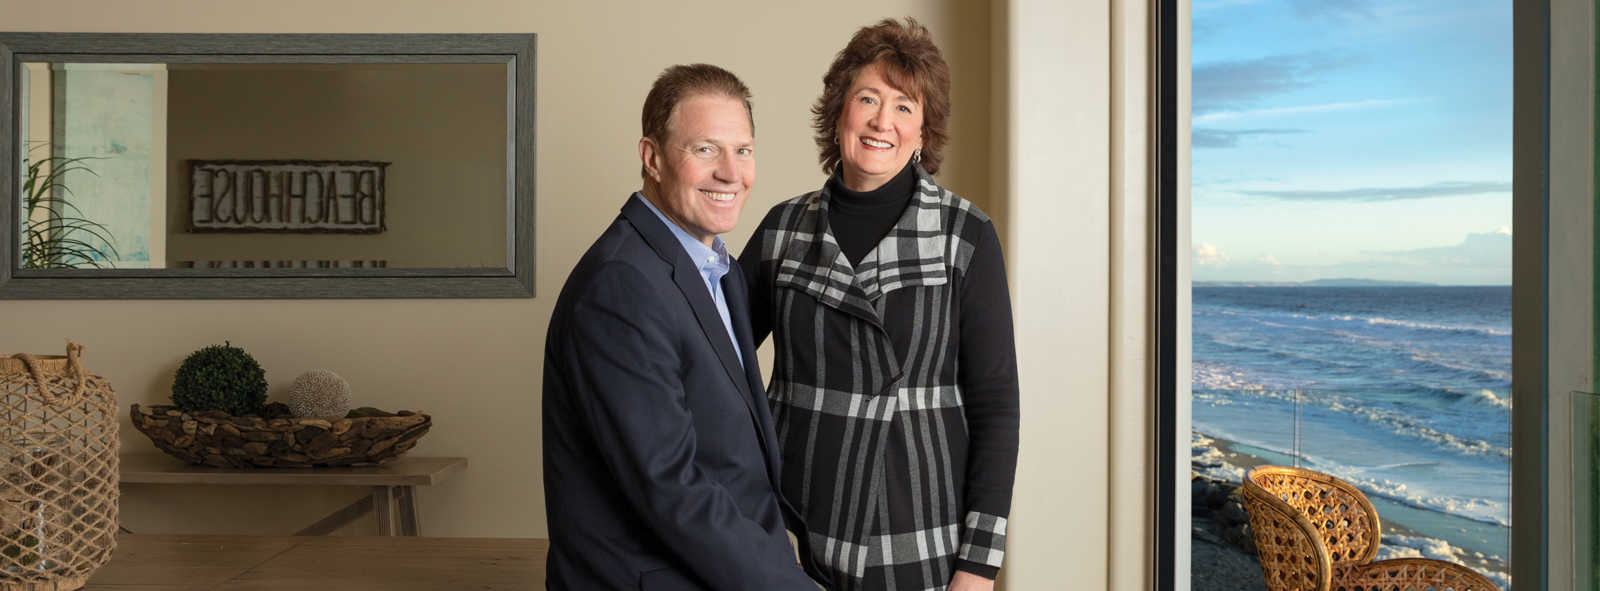 Image of First Republic Small Businesses client(s) David and Adele Fischbach